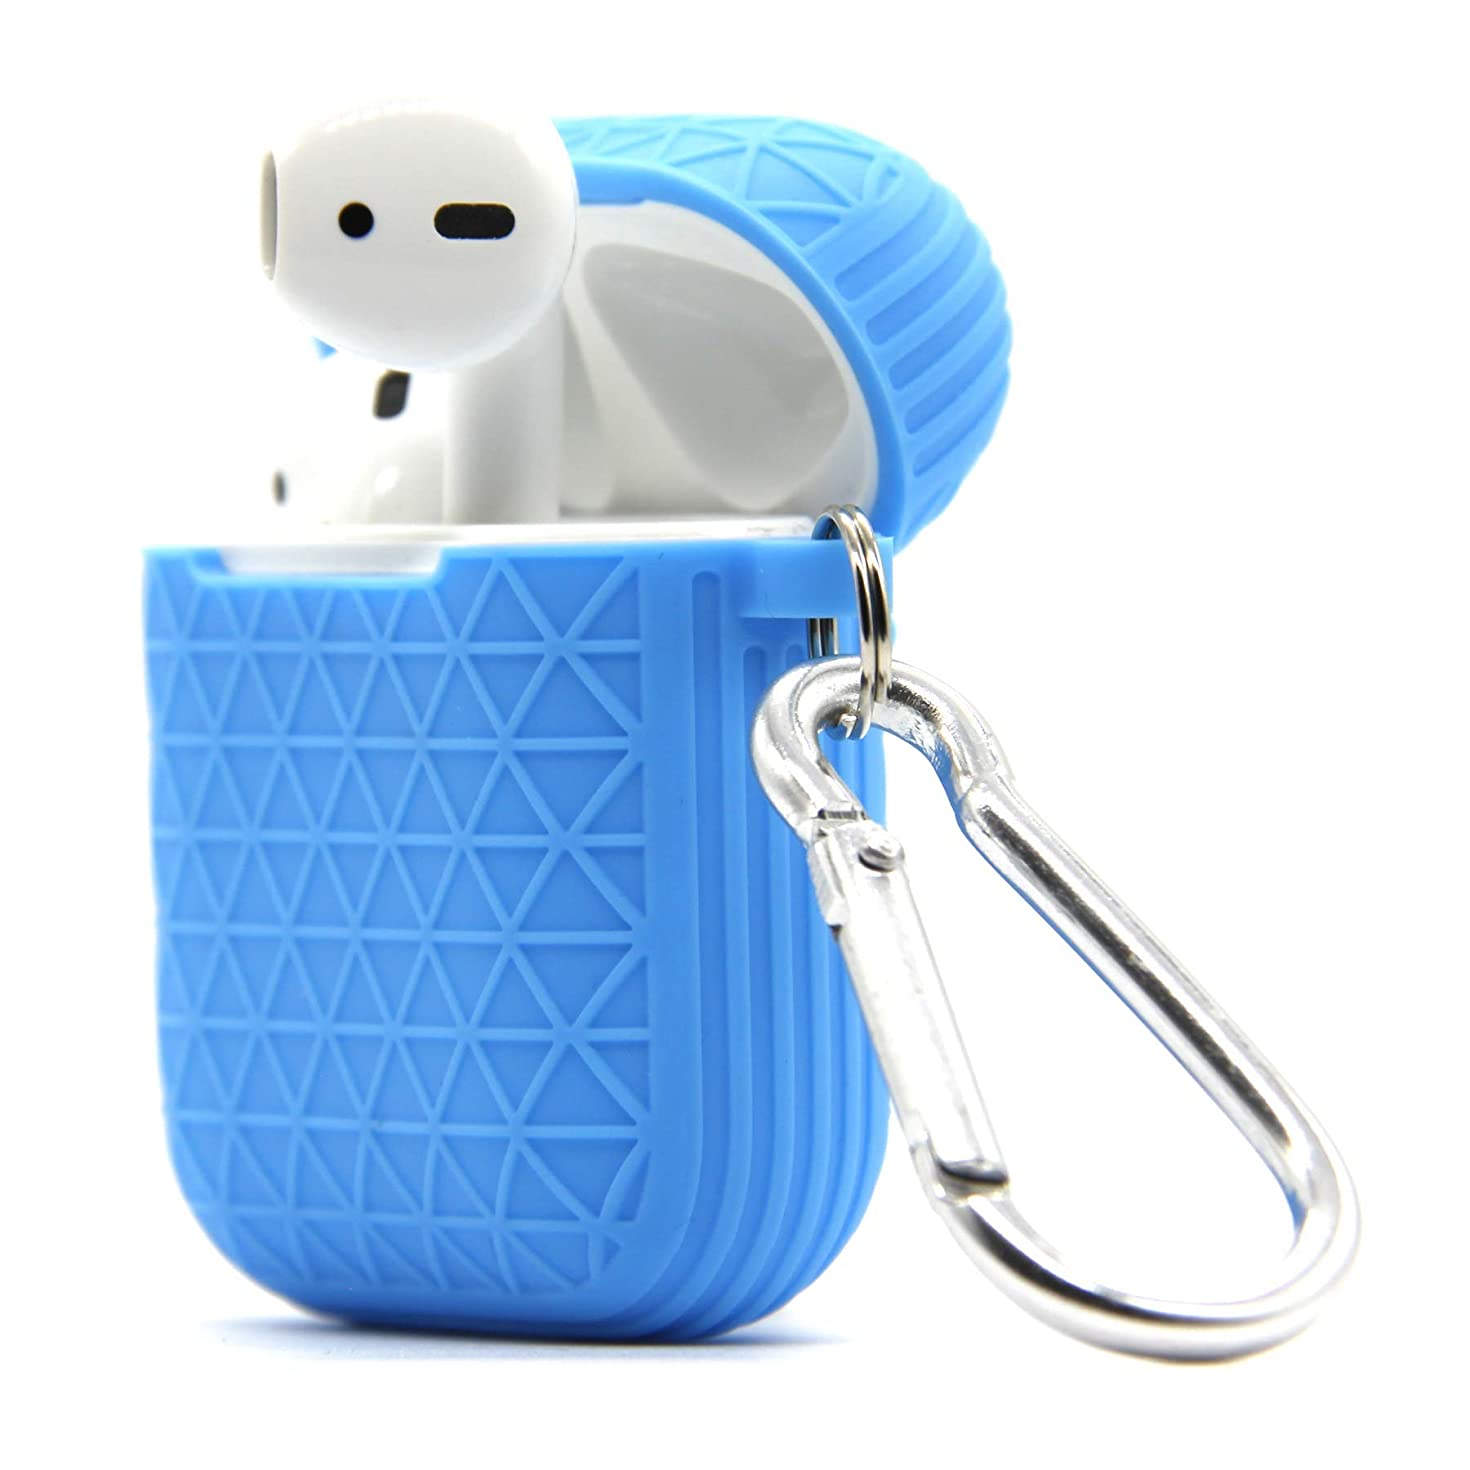 Airpods Case, Accessories Shockproof Case Cover Portable & Protective Silicone Skin Cover Case for Apple Airpods Charging Case (Sky Blue)